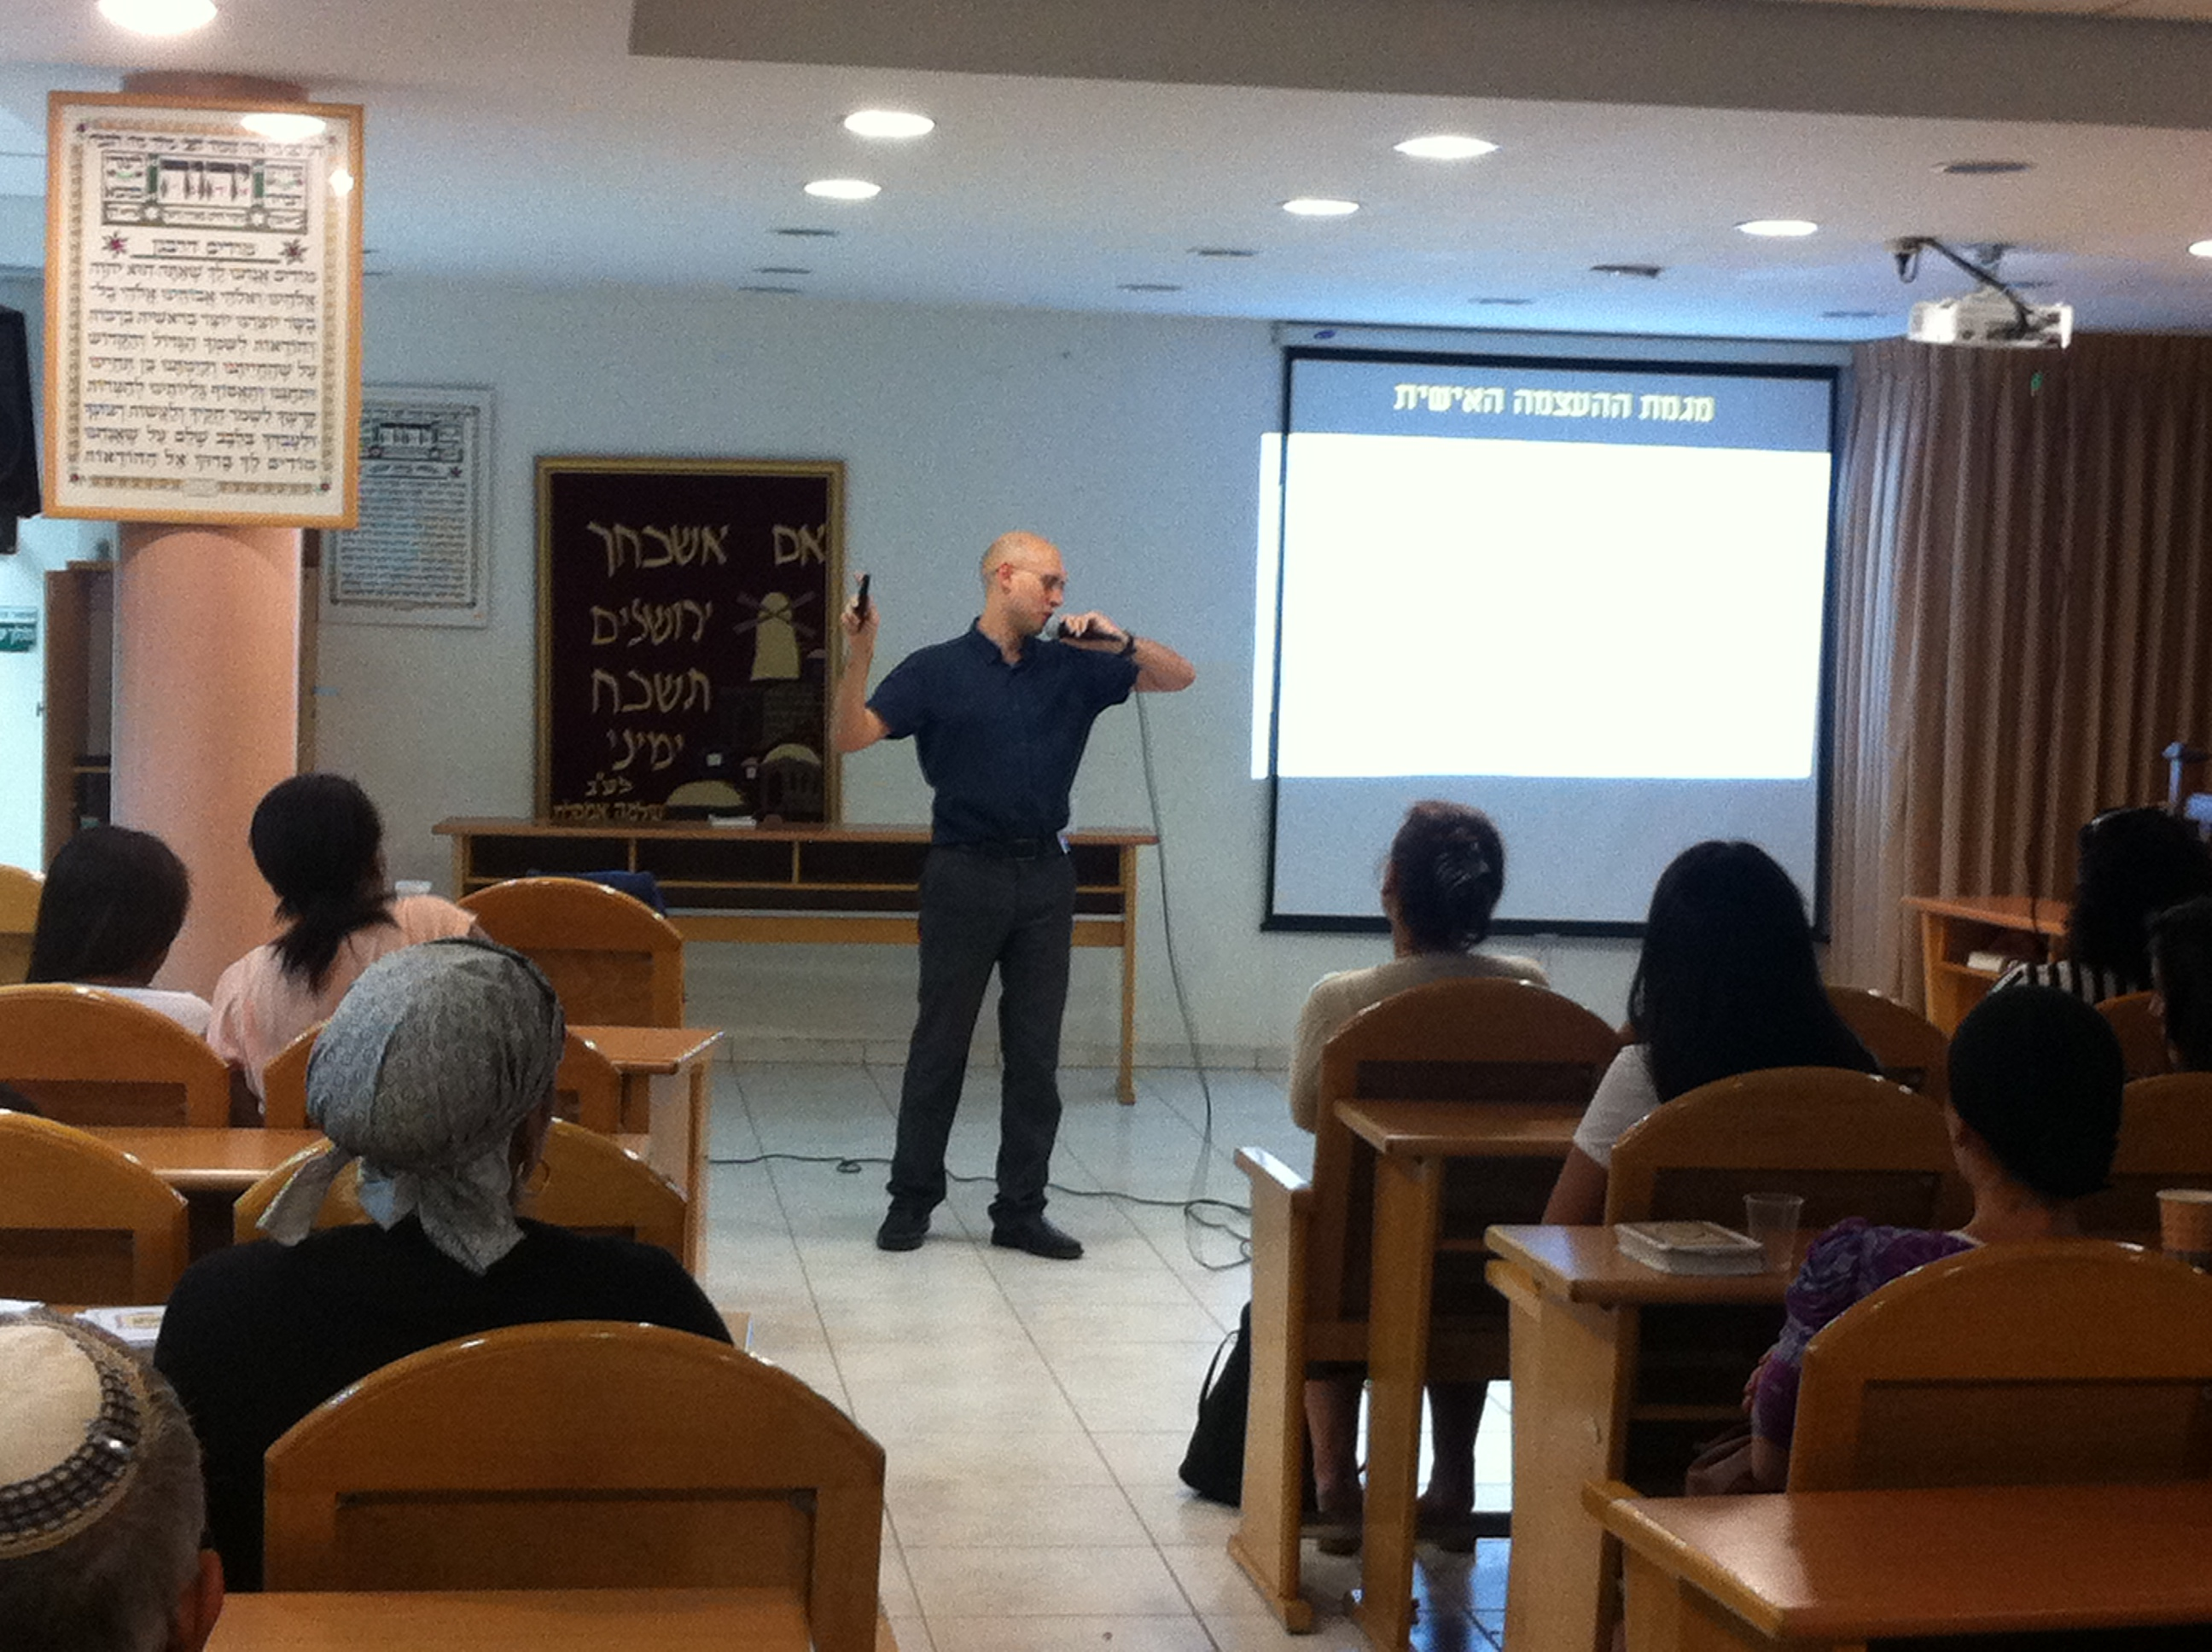 Lecture at a synagogue